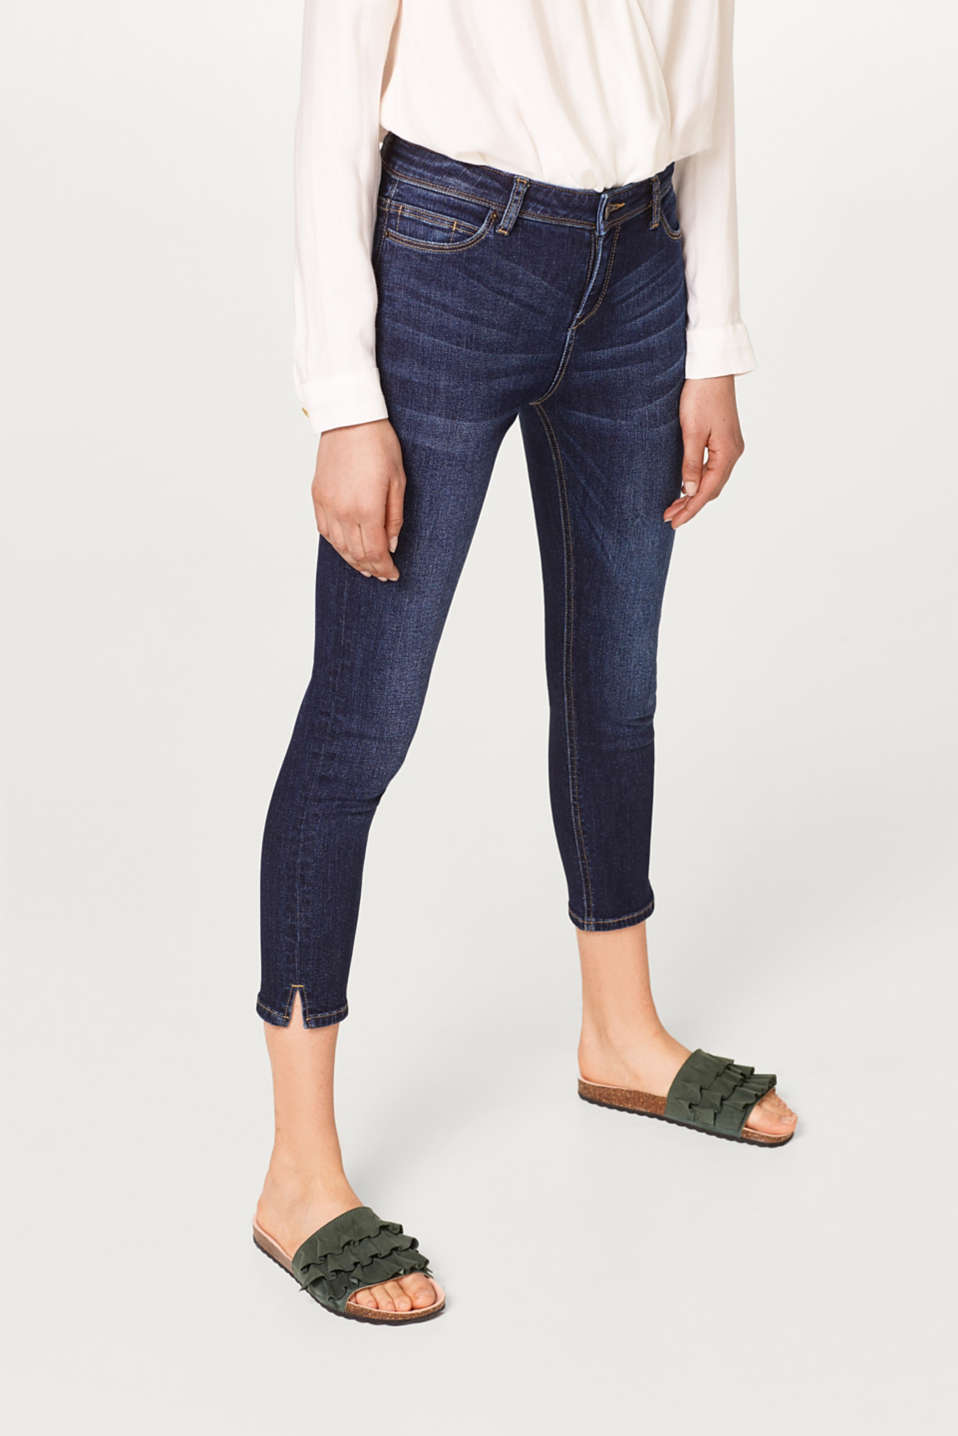 Esprit - Stretchy, summery capri length jeans